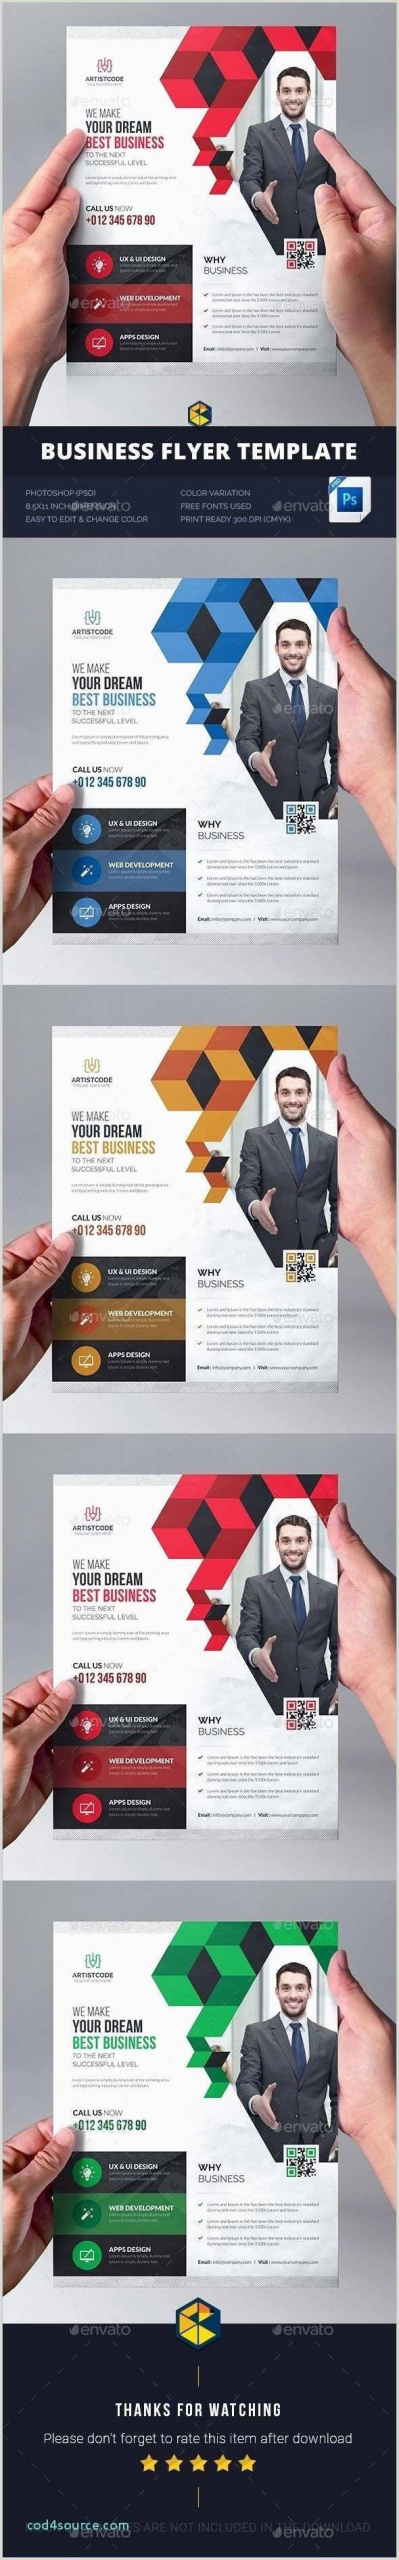 Buisness Card Idea Business Card Template Apocalomegaproductions